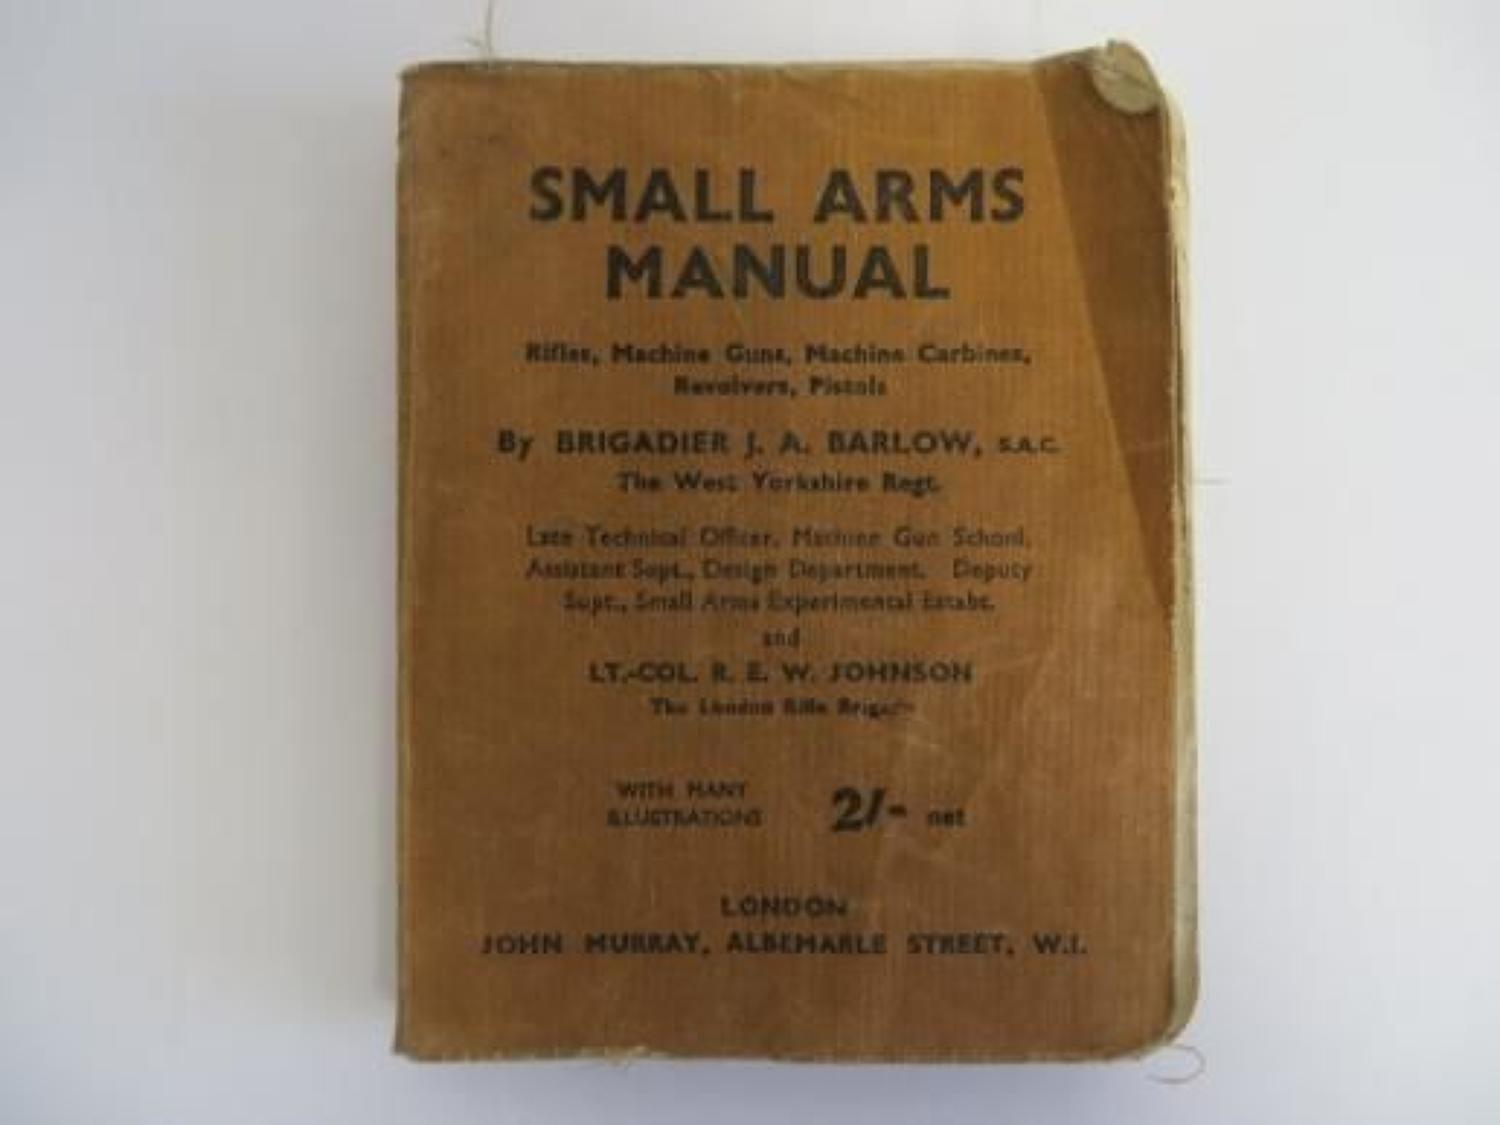 WW2 Small Arms Manual